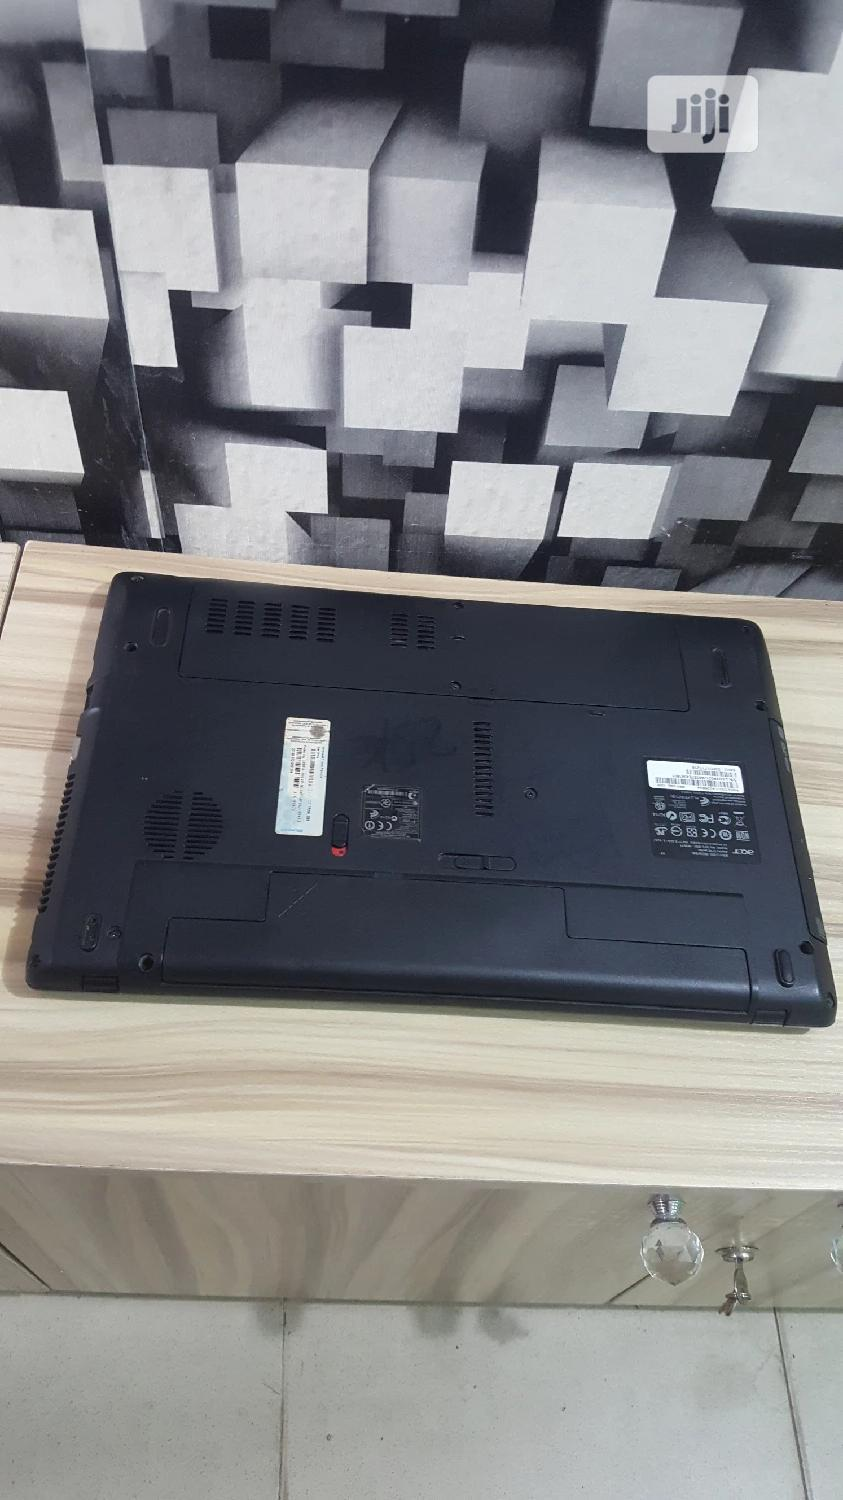 Laptop Acer Aspire 5742 4GB Intel Core i3 HDD 320GB   Laptops & Computers for sale in Ikeja, Lagos State, Nigeria